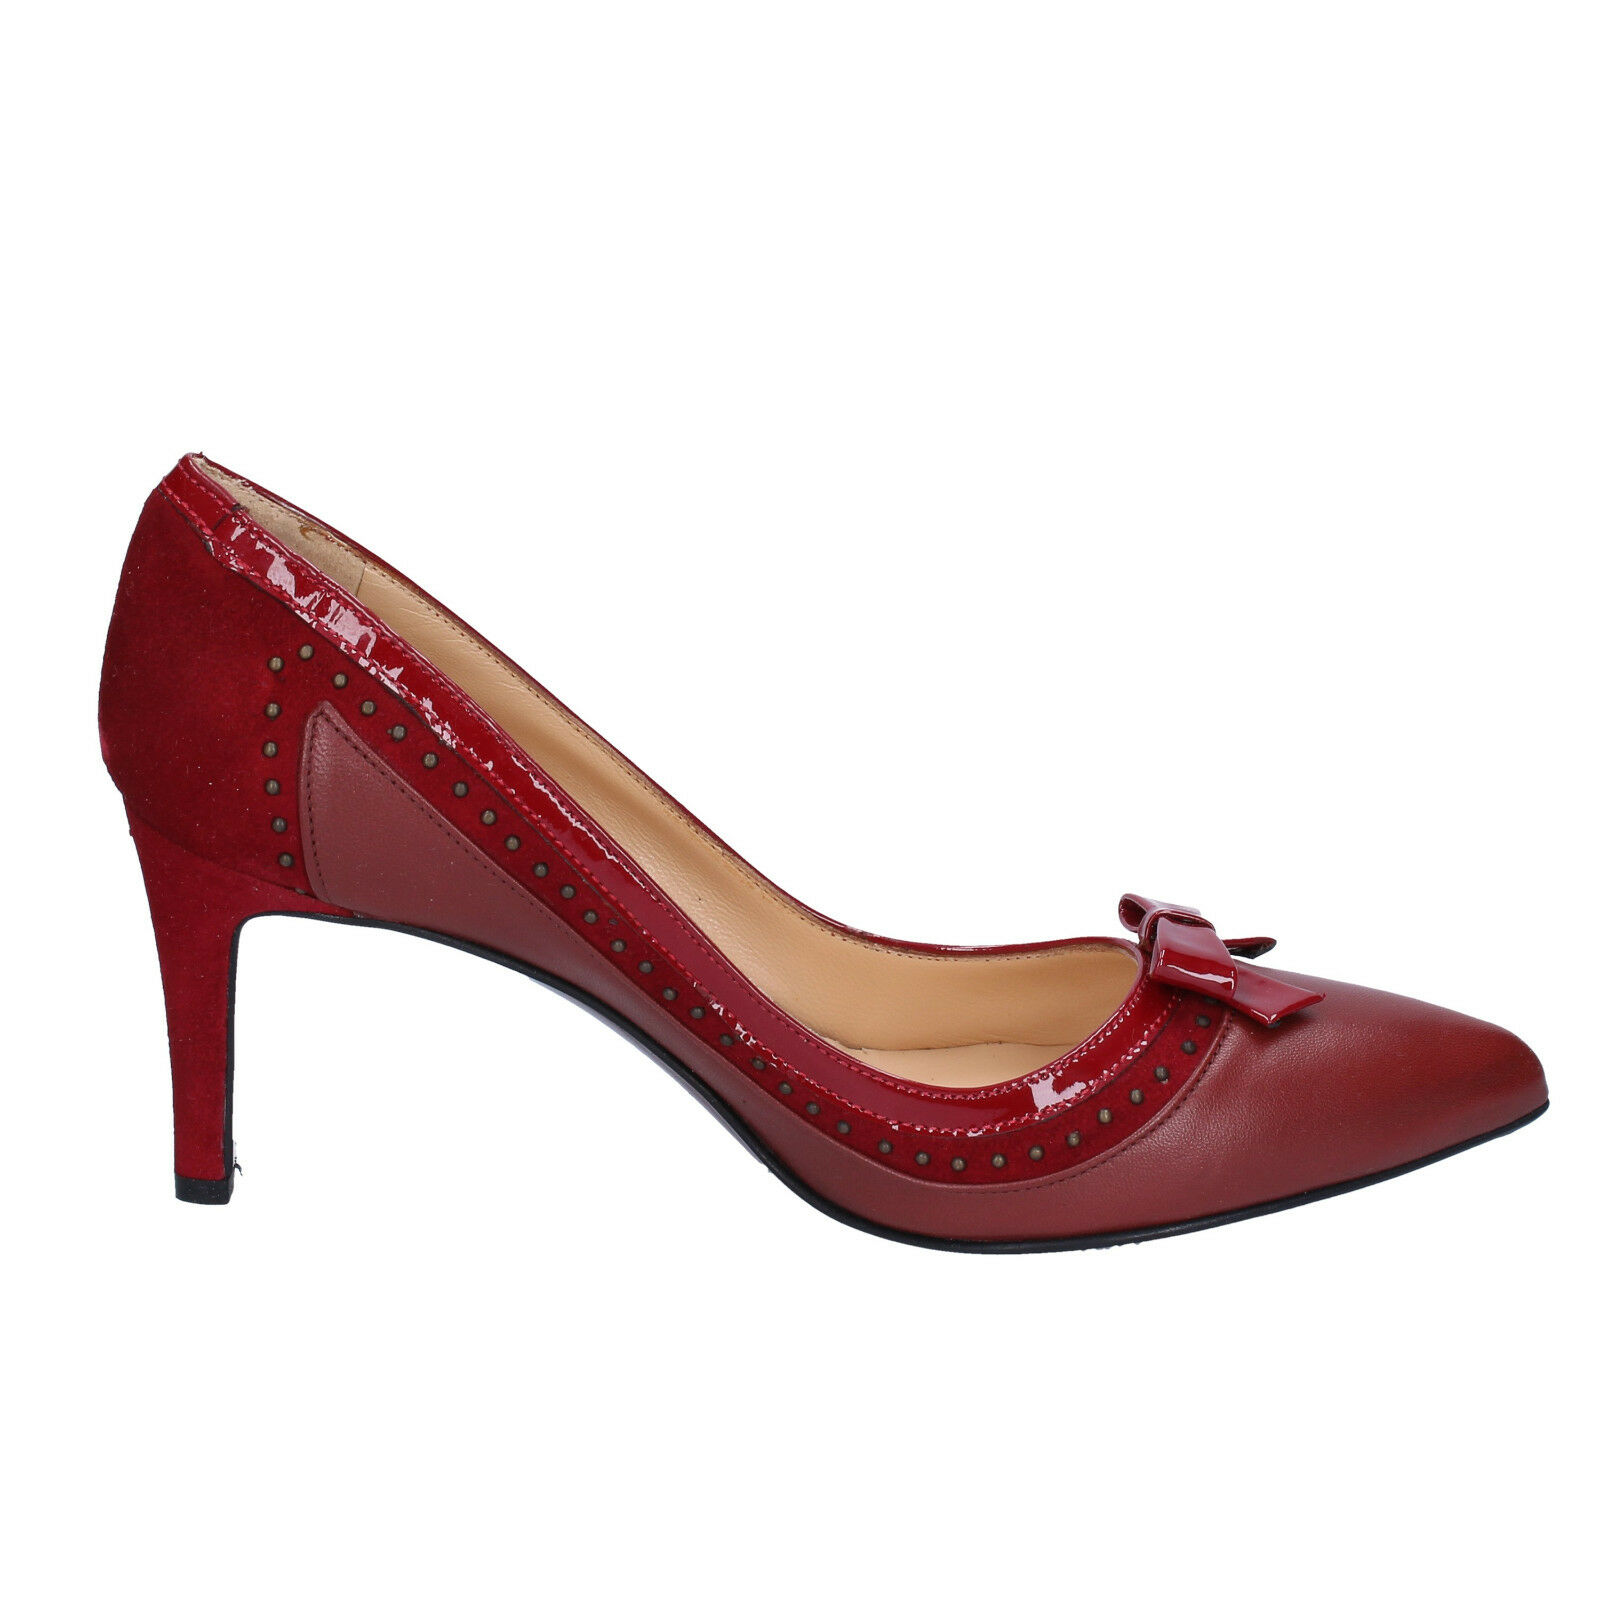 Women's shoes MI AMOR 7 (EU 37) 37) 37) courts burgundy suede patent leather BX401-37 0b02e2